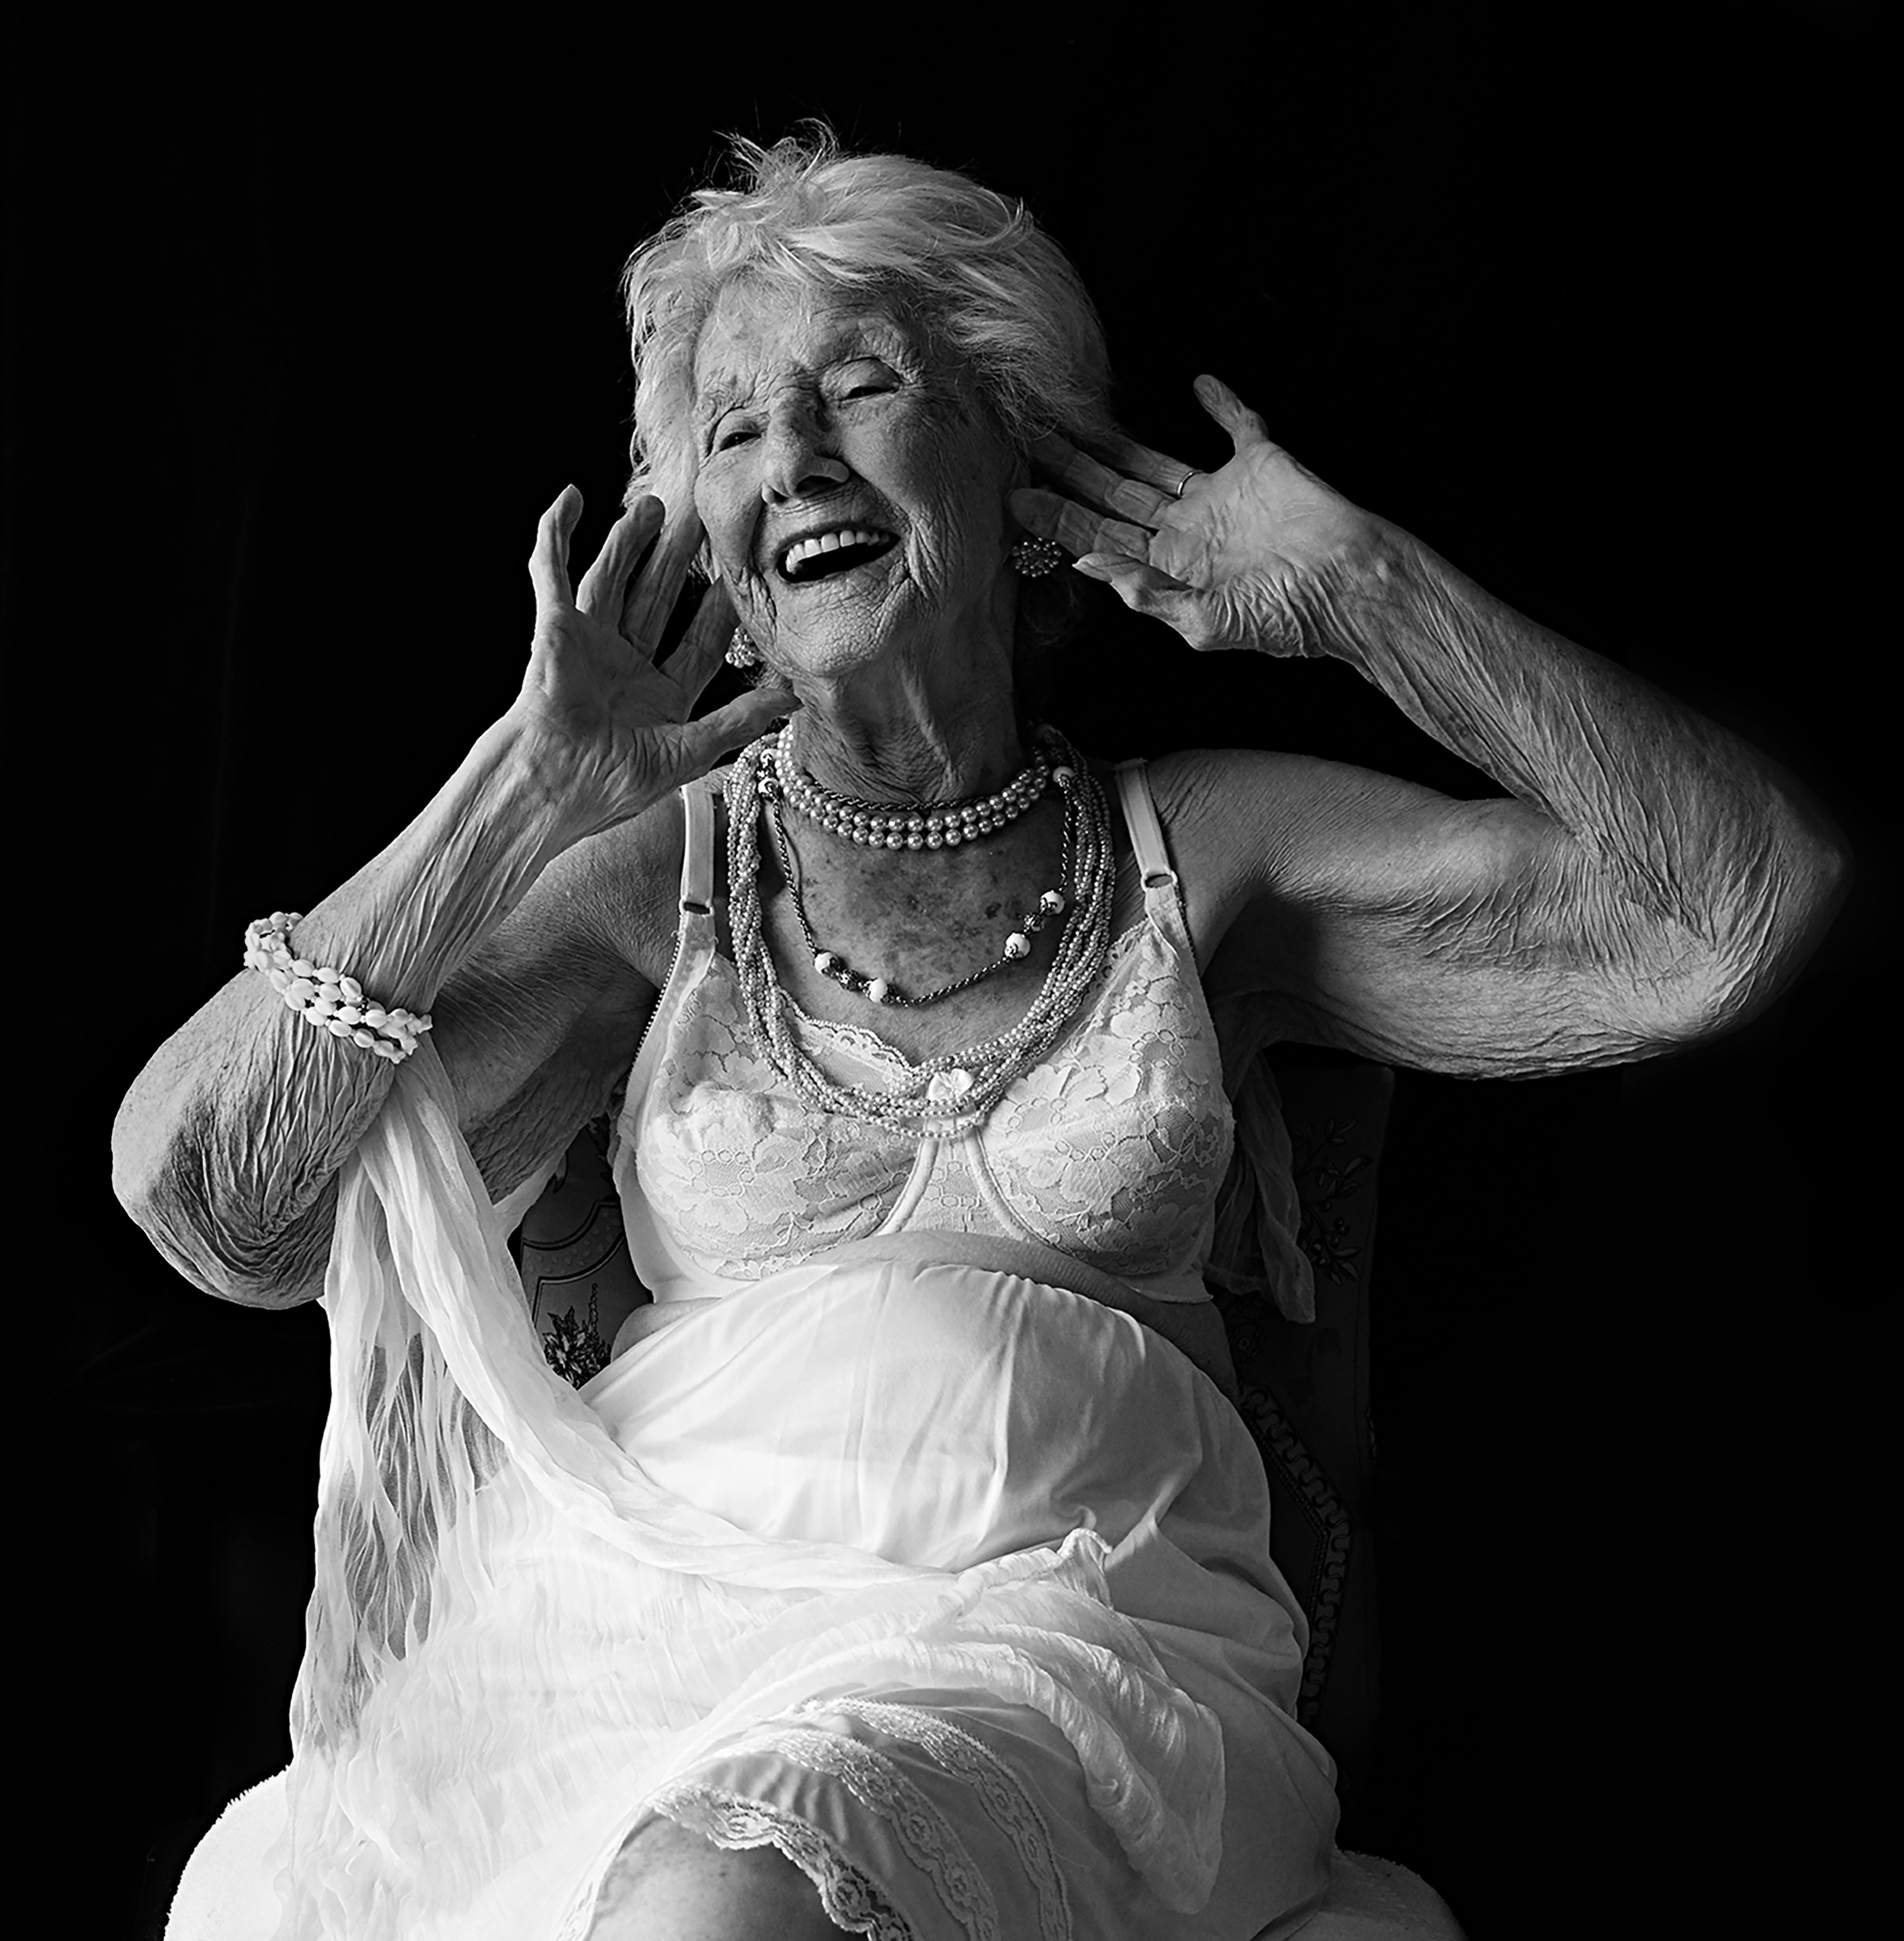 """105-year-old Marie-Berthe Paquette of Montreal offers this advice on aging: """"I personally find myself beautiful, and when I don't, I do my best anyways! I like to have my hair neatly styled and wear dresses, jewelry and other accessories. I've always paid attention to my appearance. In fact, I'm known as 'la fraîche' (the trendy lady)"""". (Arianne Clément/GroundTruth)"""